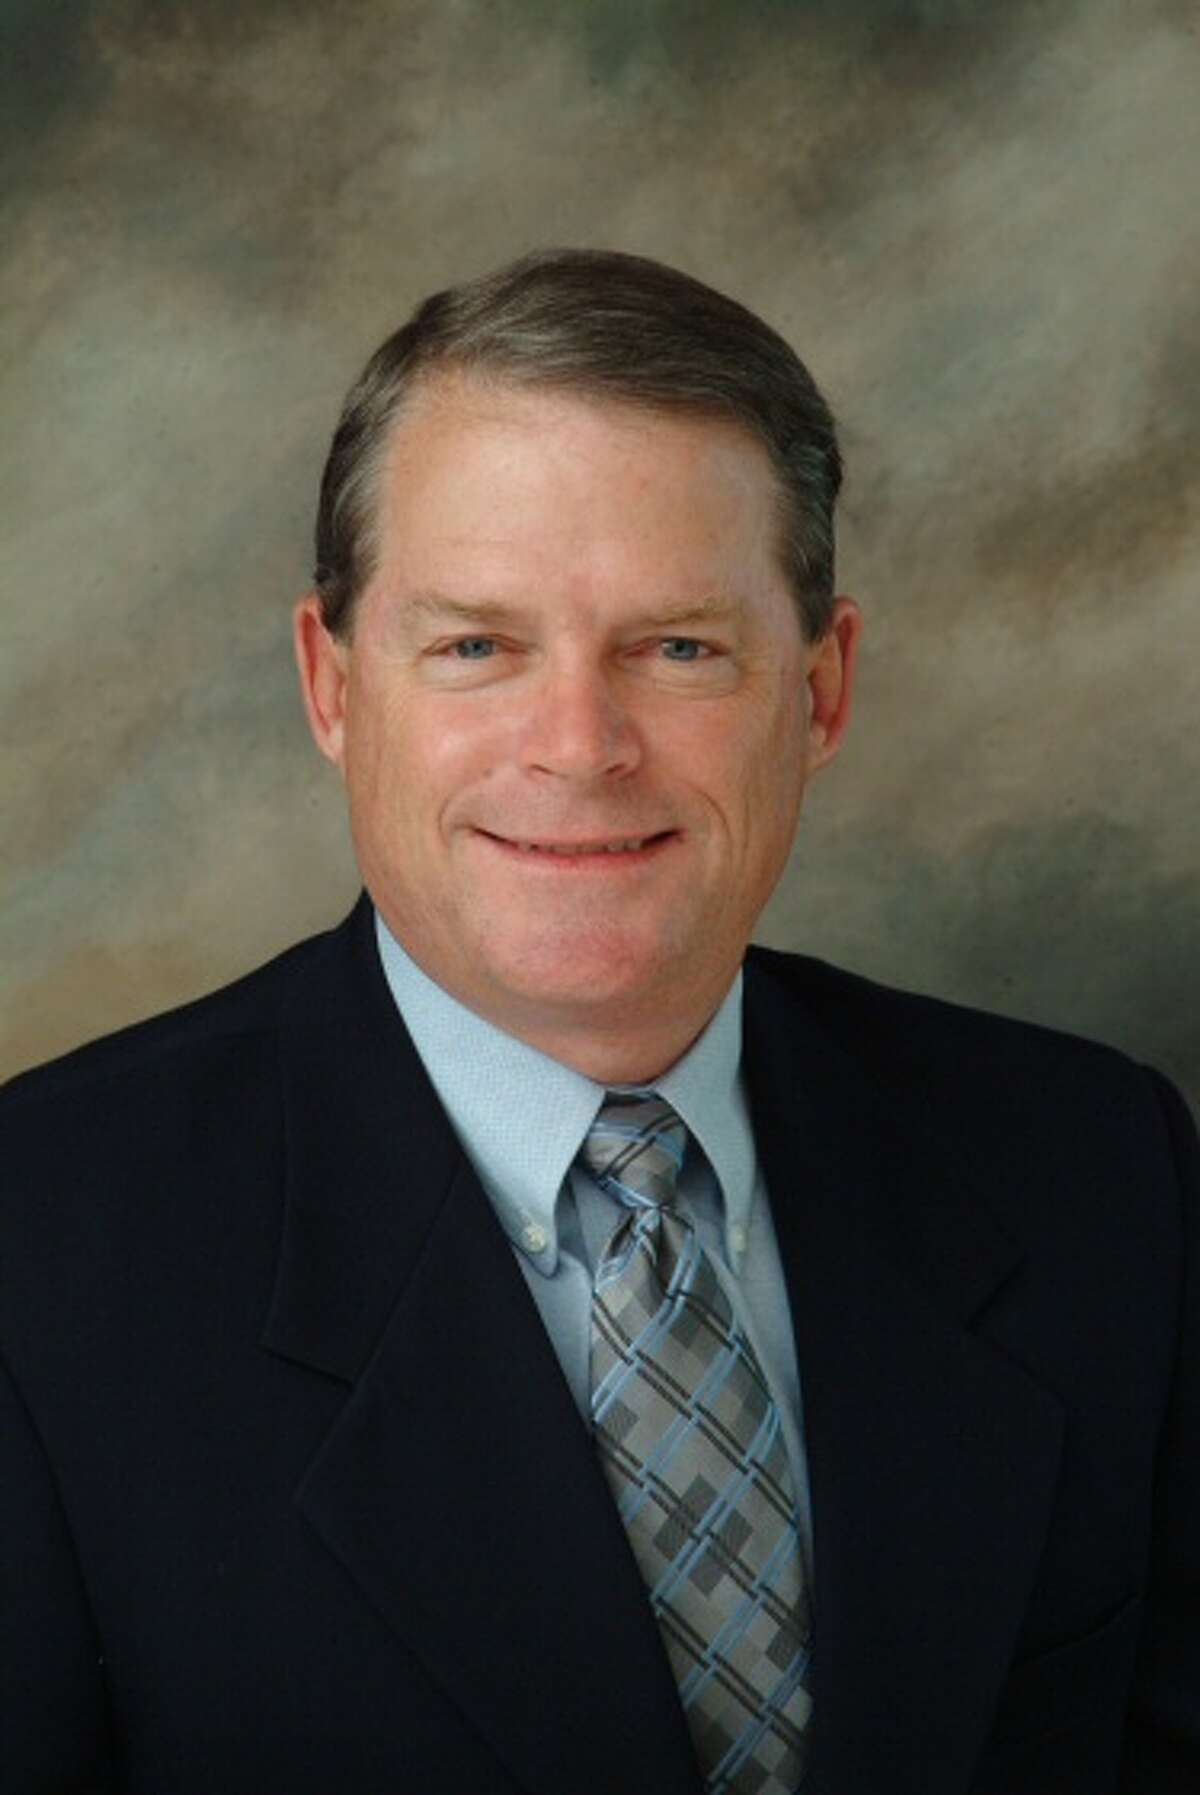 Jimmy Rasmussen, president and CEO of HomeTown Bank, will be the guest speaker at the Friendswood Chamber of Commerce's 'Let's Do Lunch' general membership networking luncheon taking place Thursday, Nov. 7, at the Green Event Center in Friendswood.